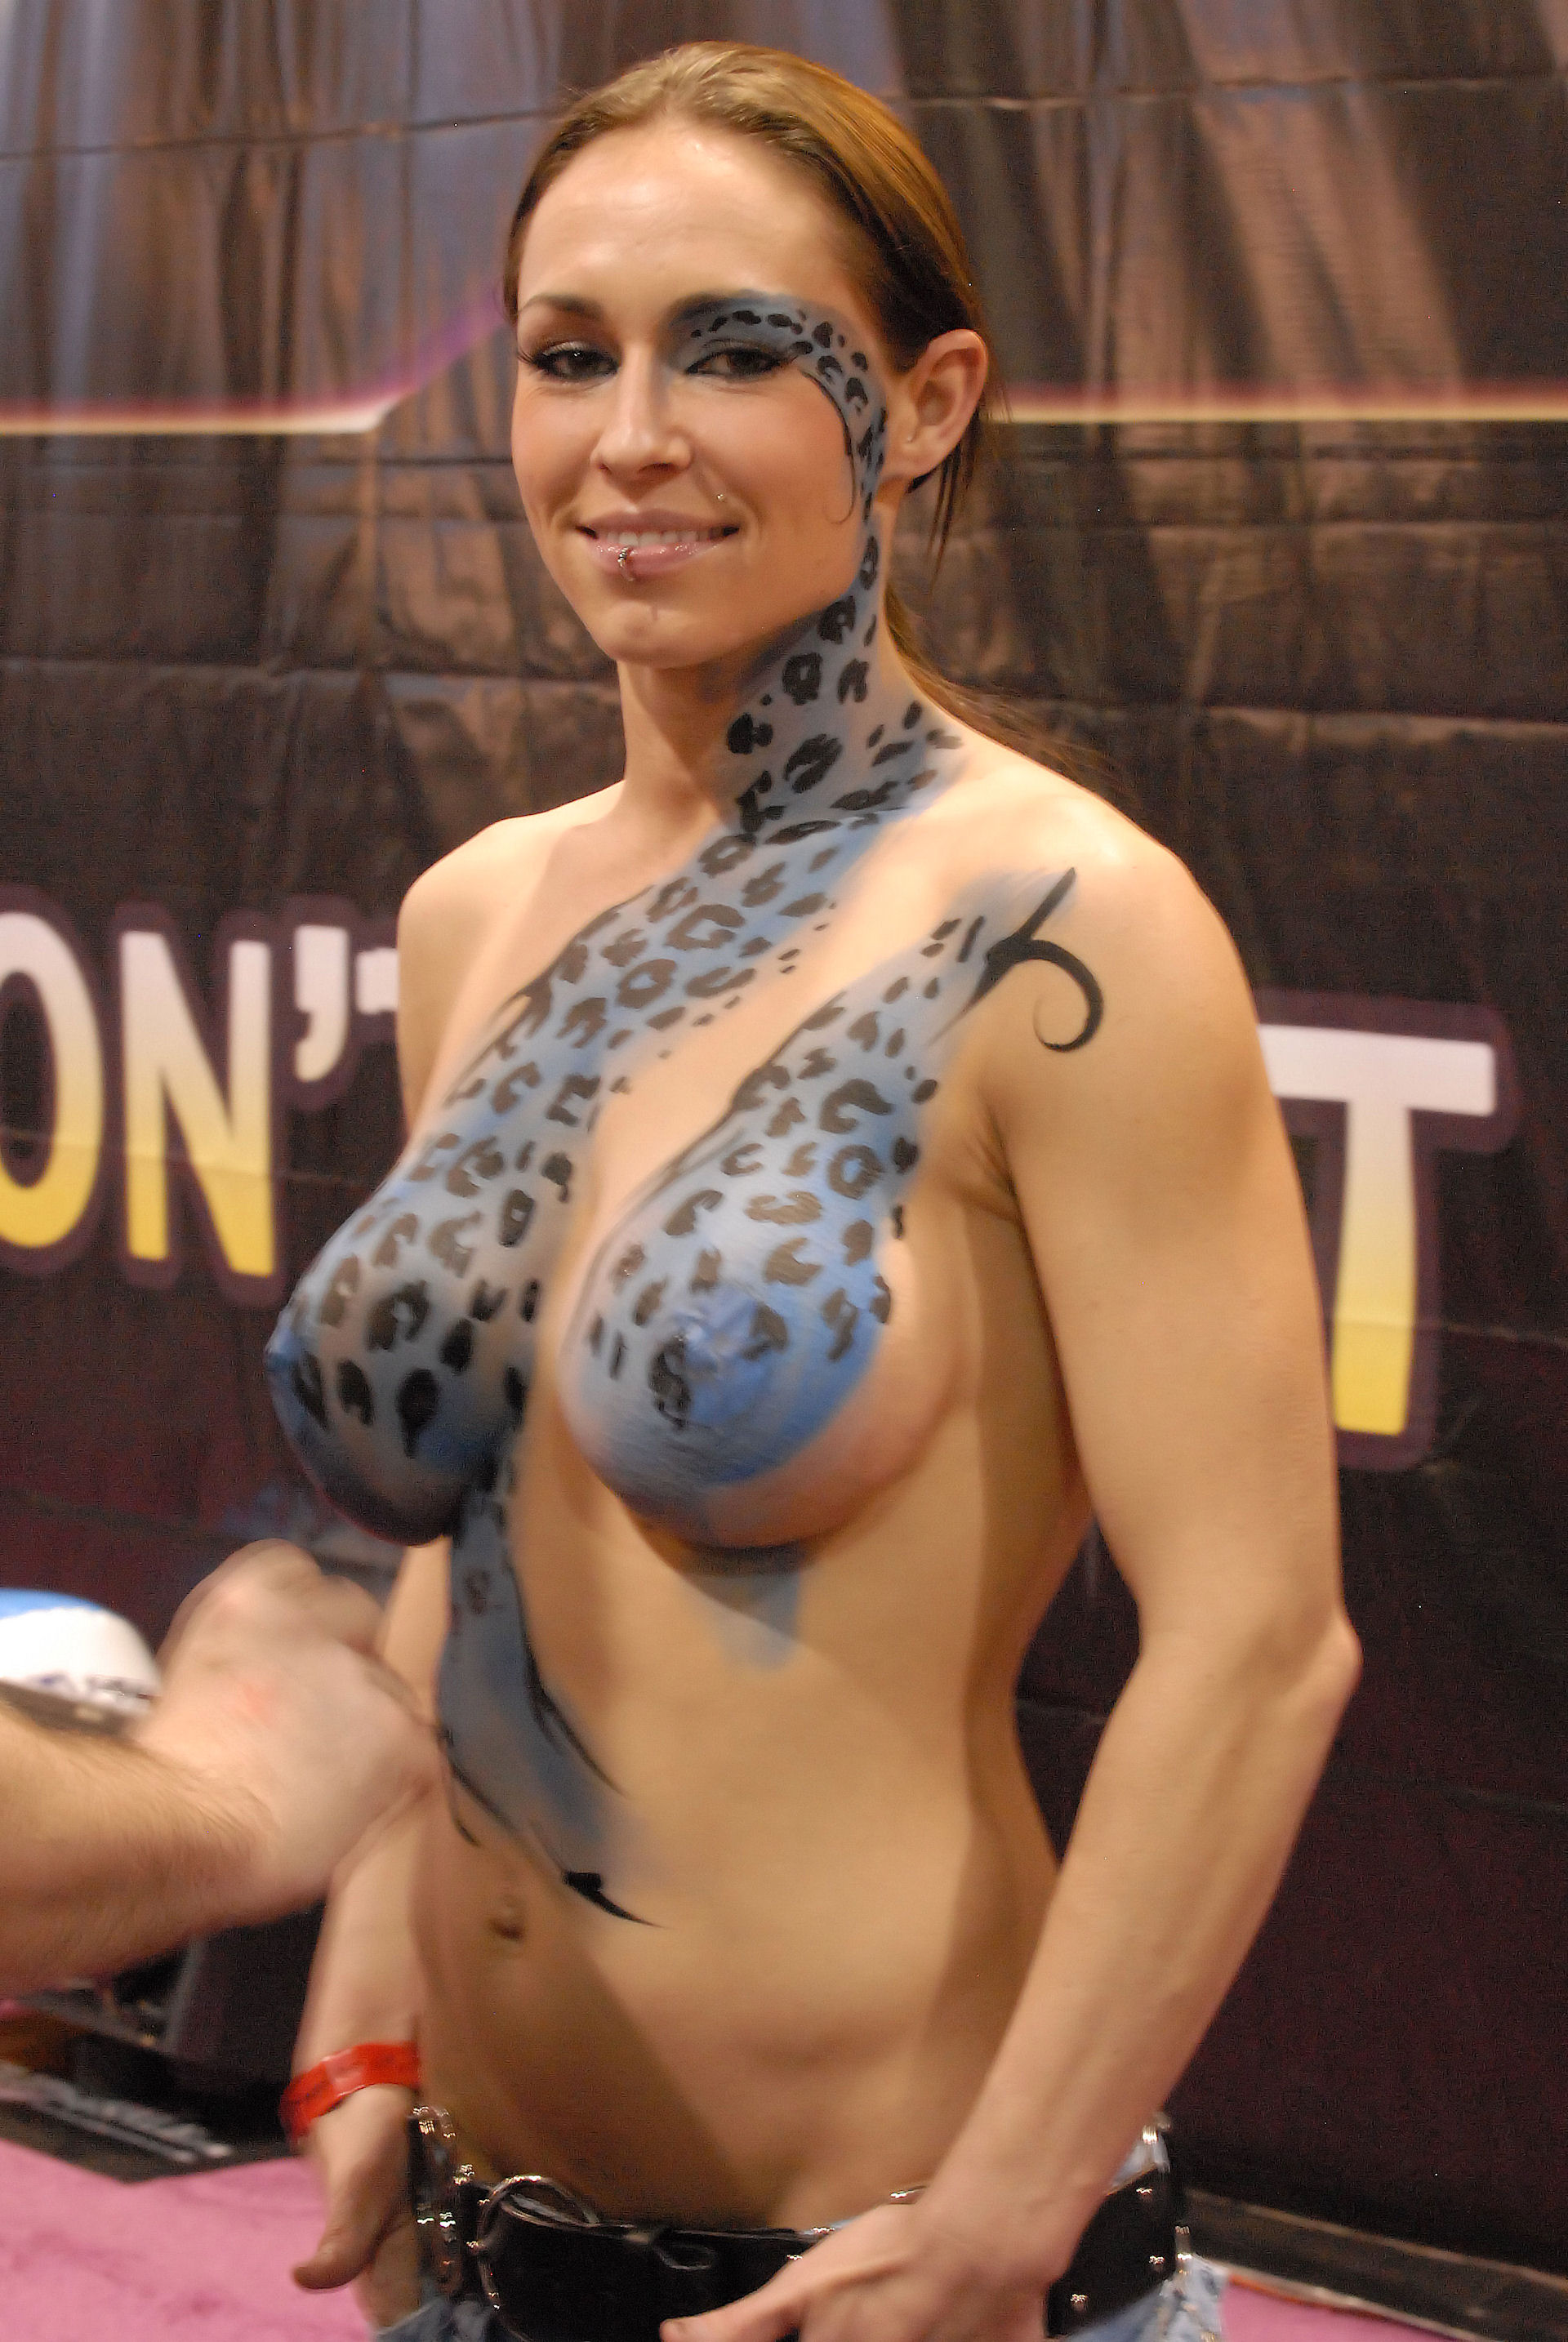 Essence. avn expo handjob was